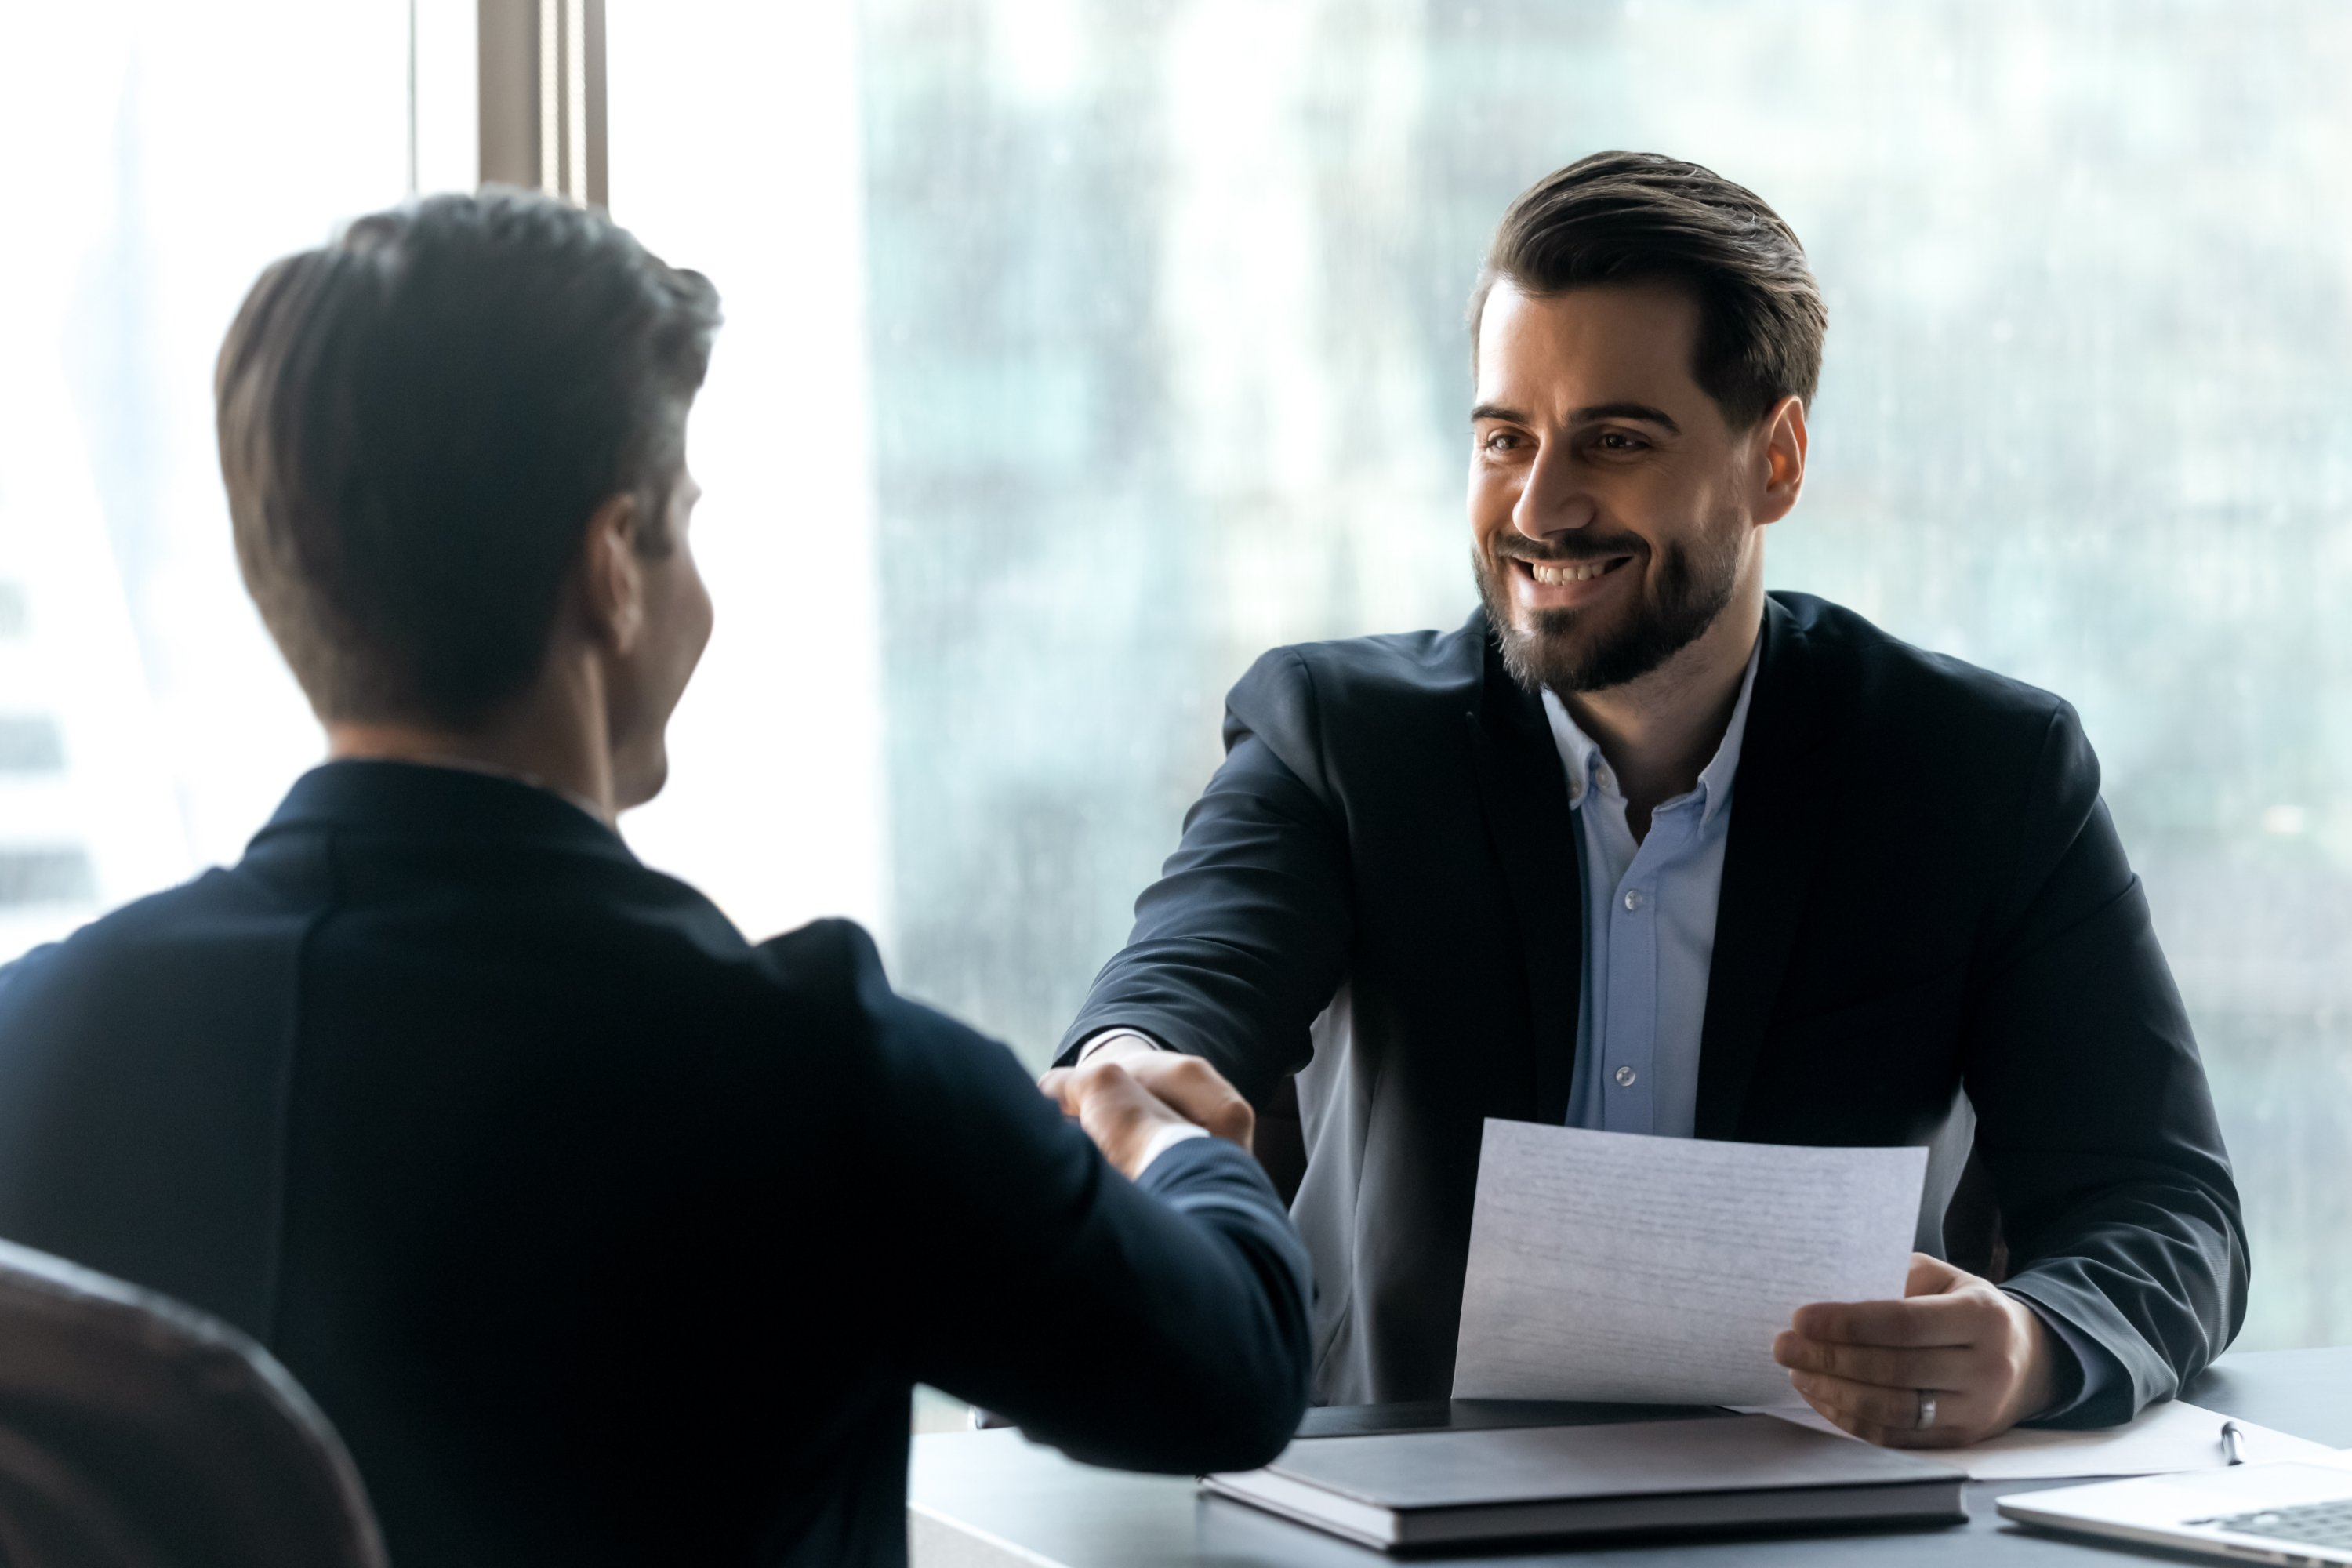 Ace the Interview | What to Wear and How to Prepare for Interviews